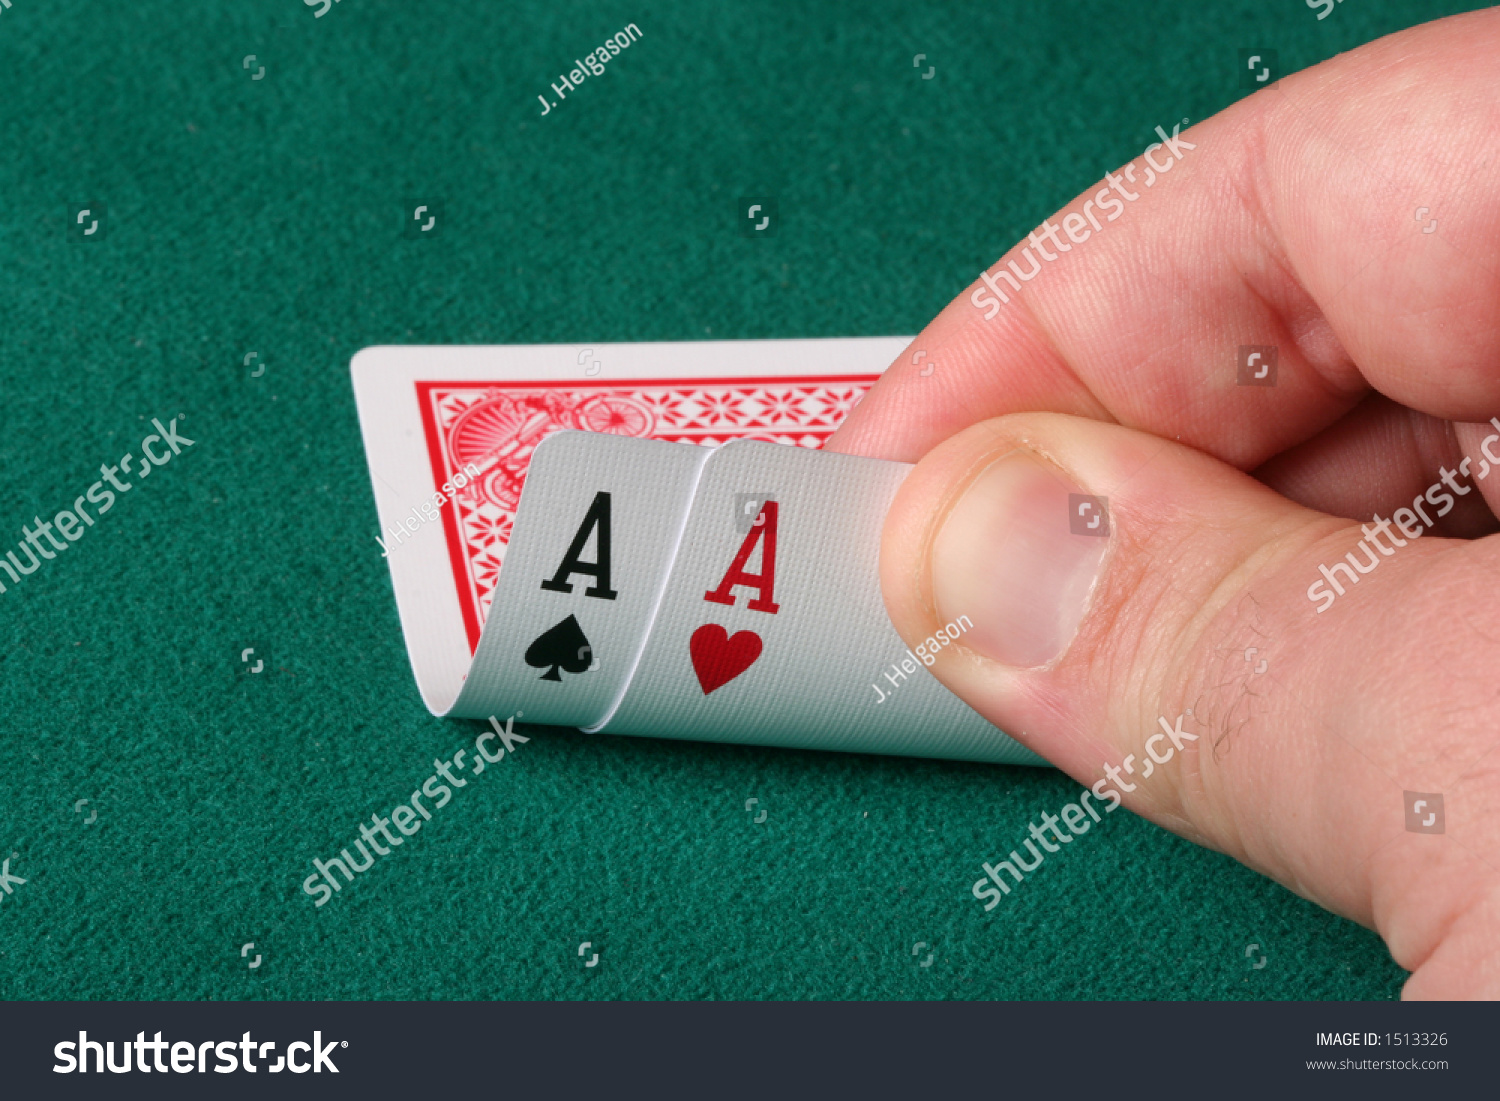 Best hole cards to play in texas holdem